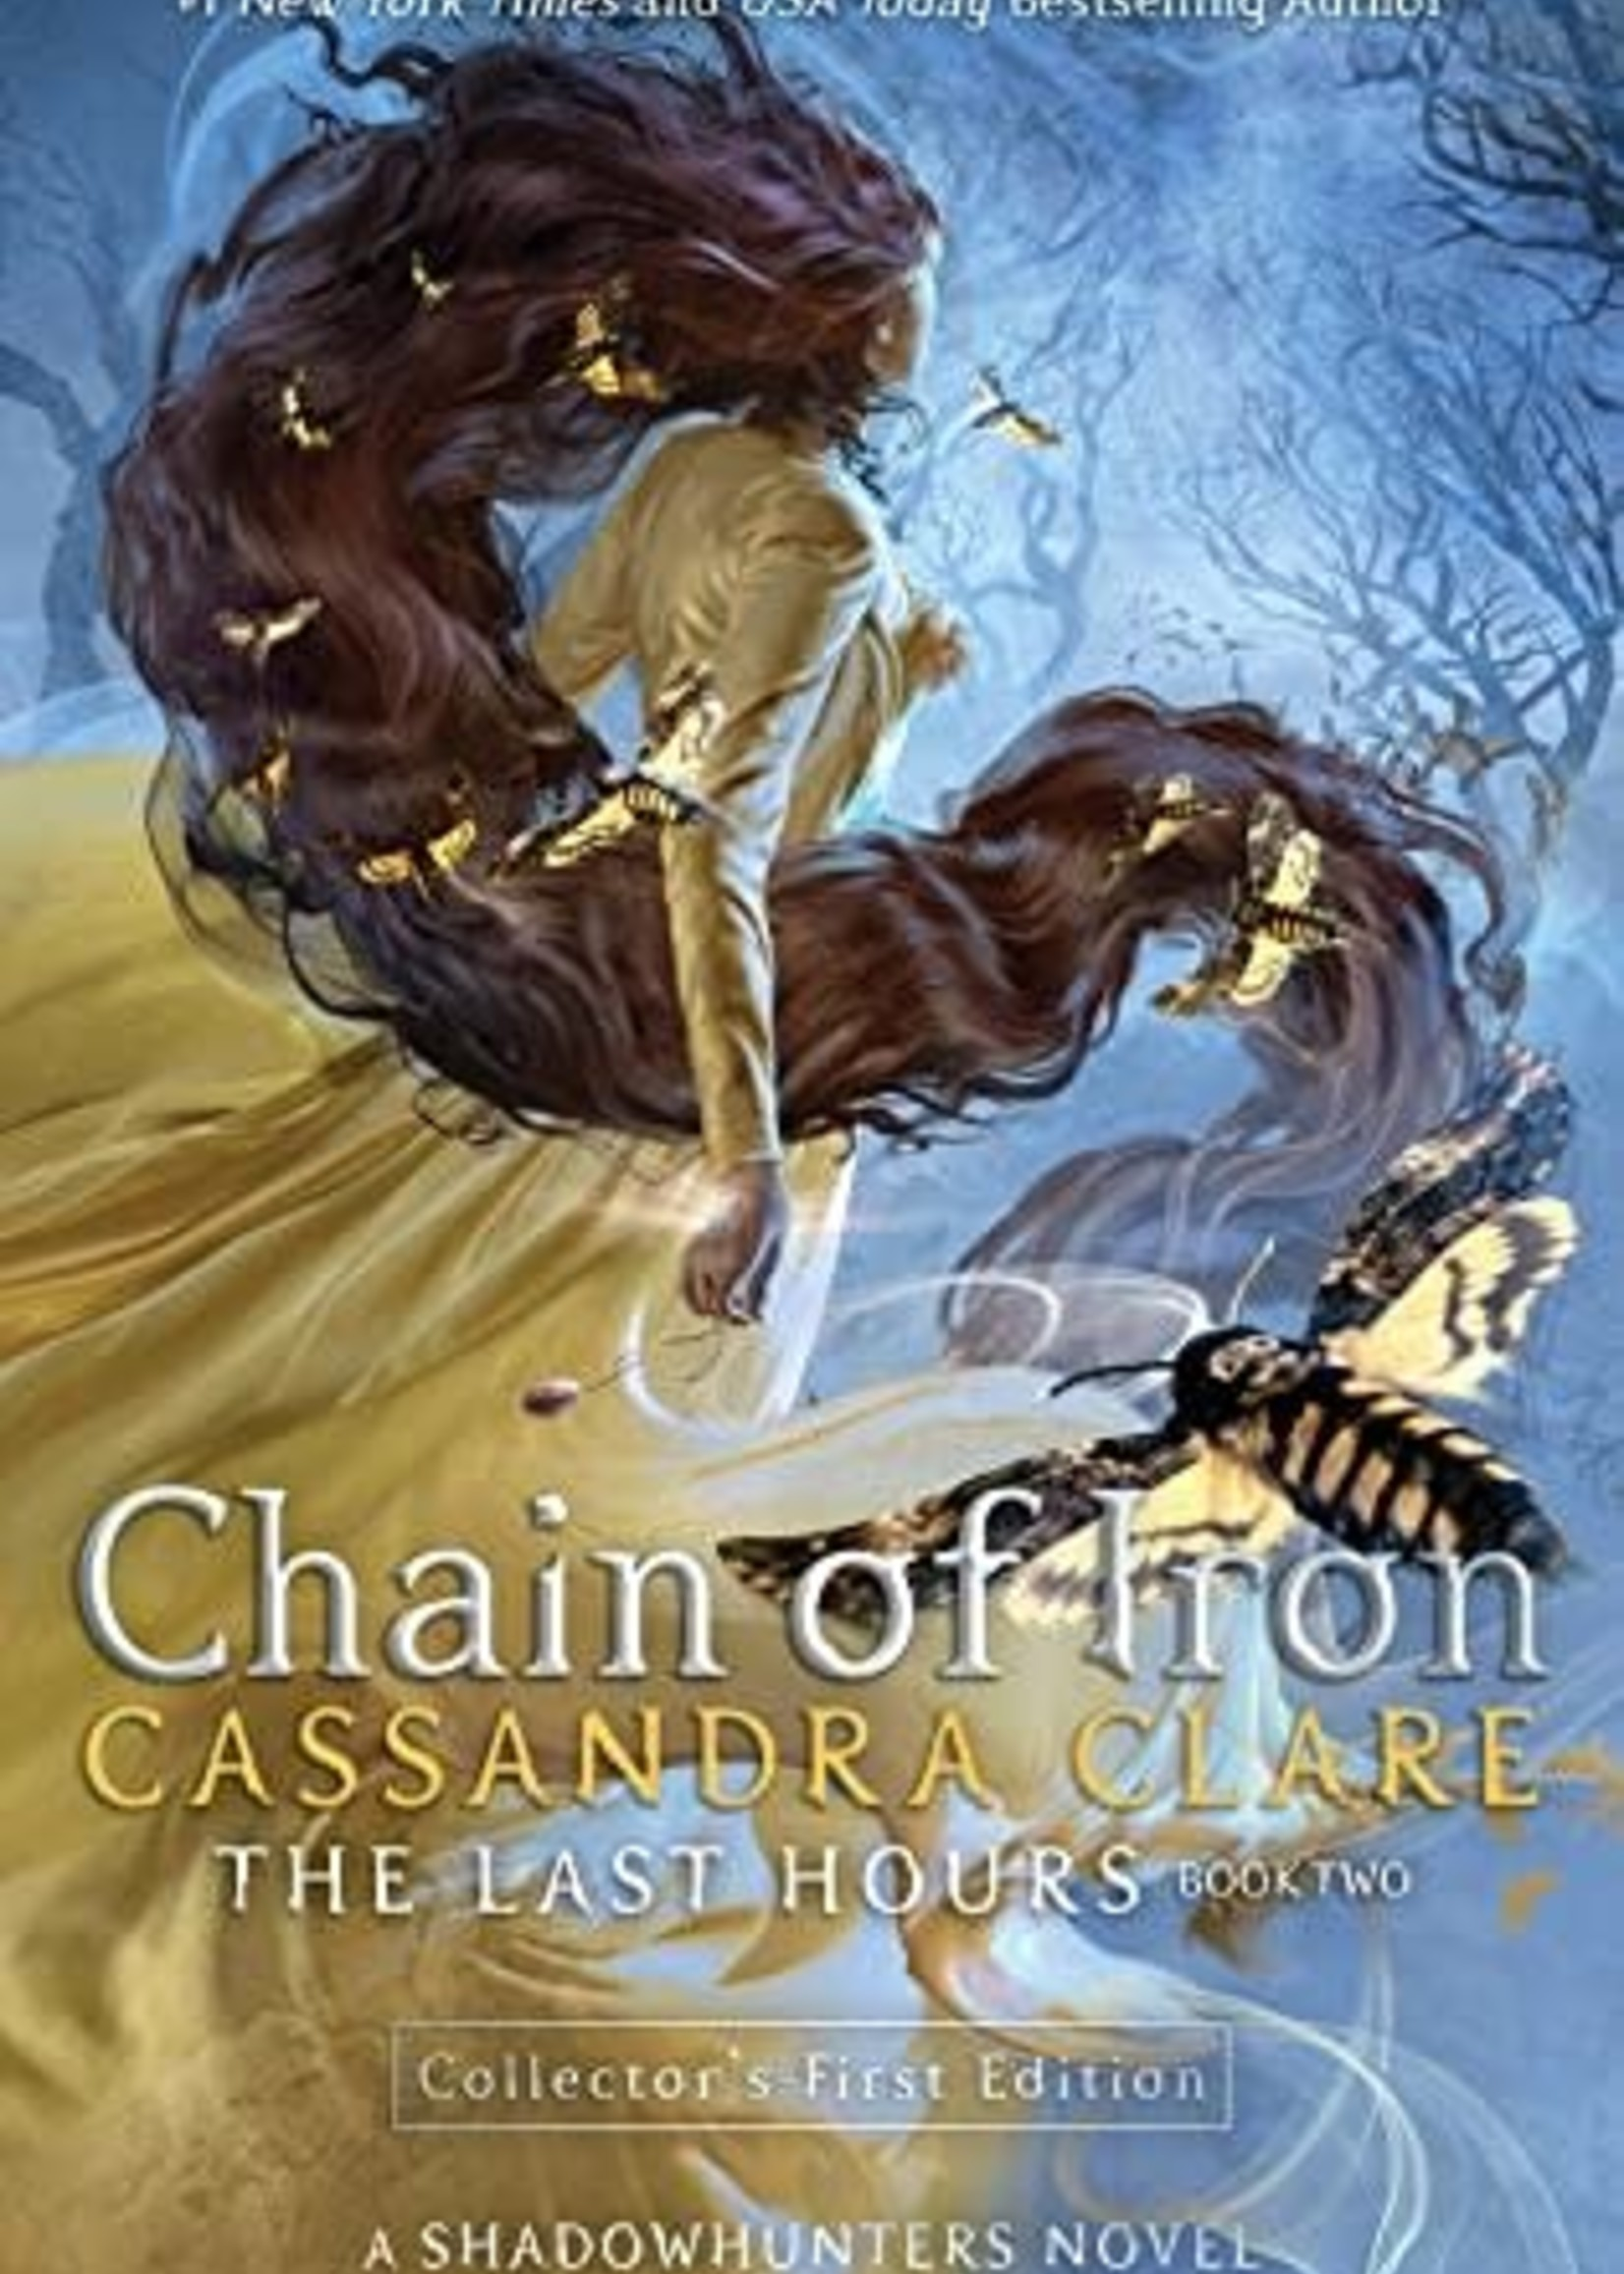 Chain of Iron (The Last Hours #2) by Cassandra Clare